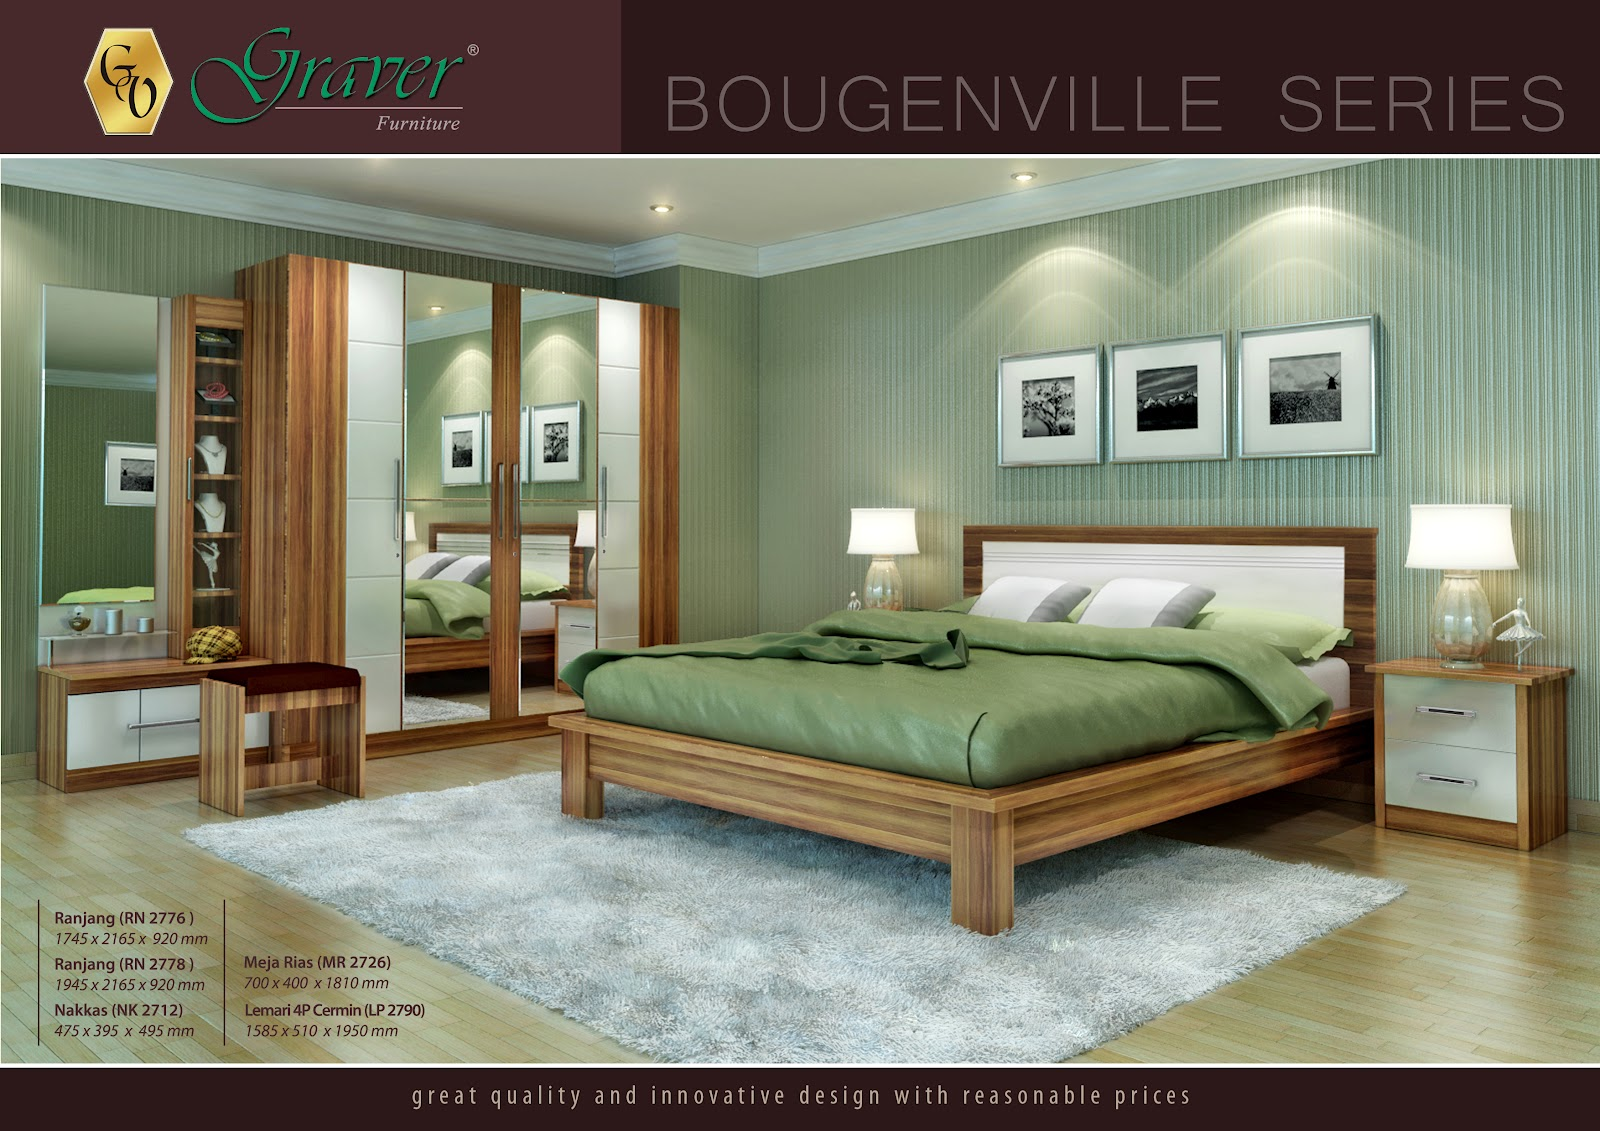 Bougenvile Furniture